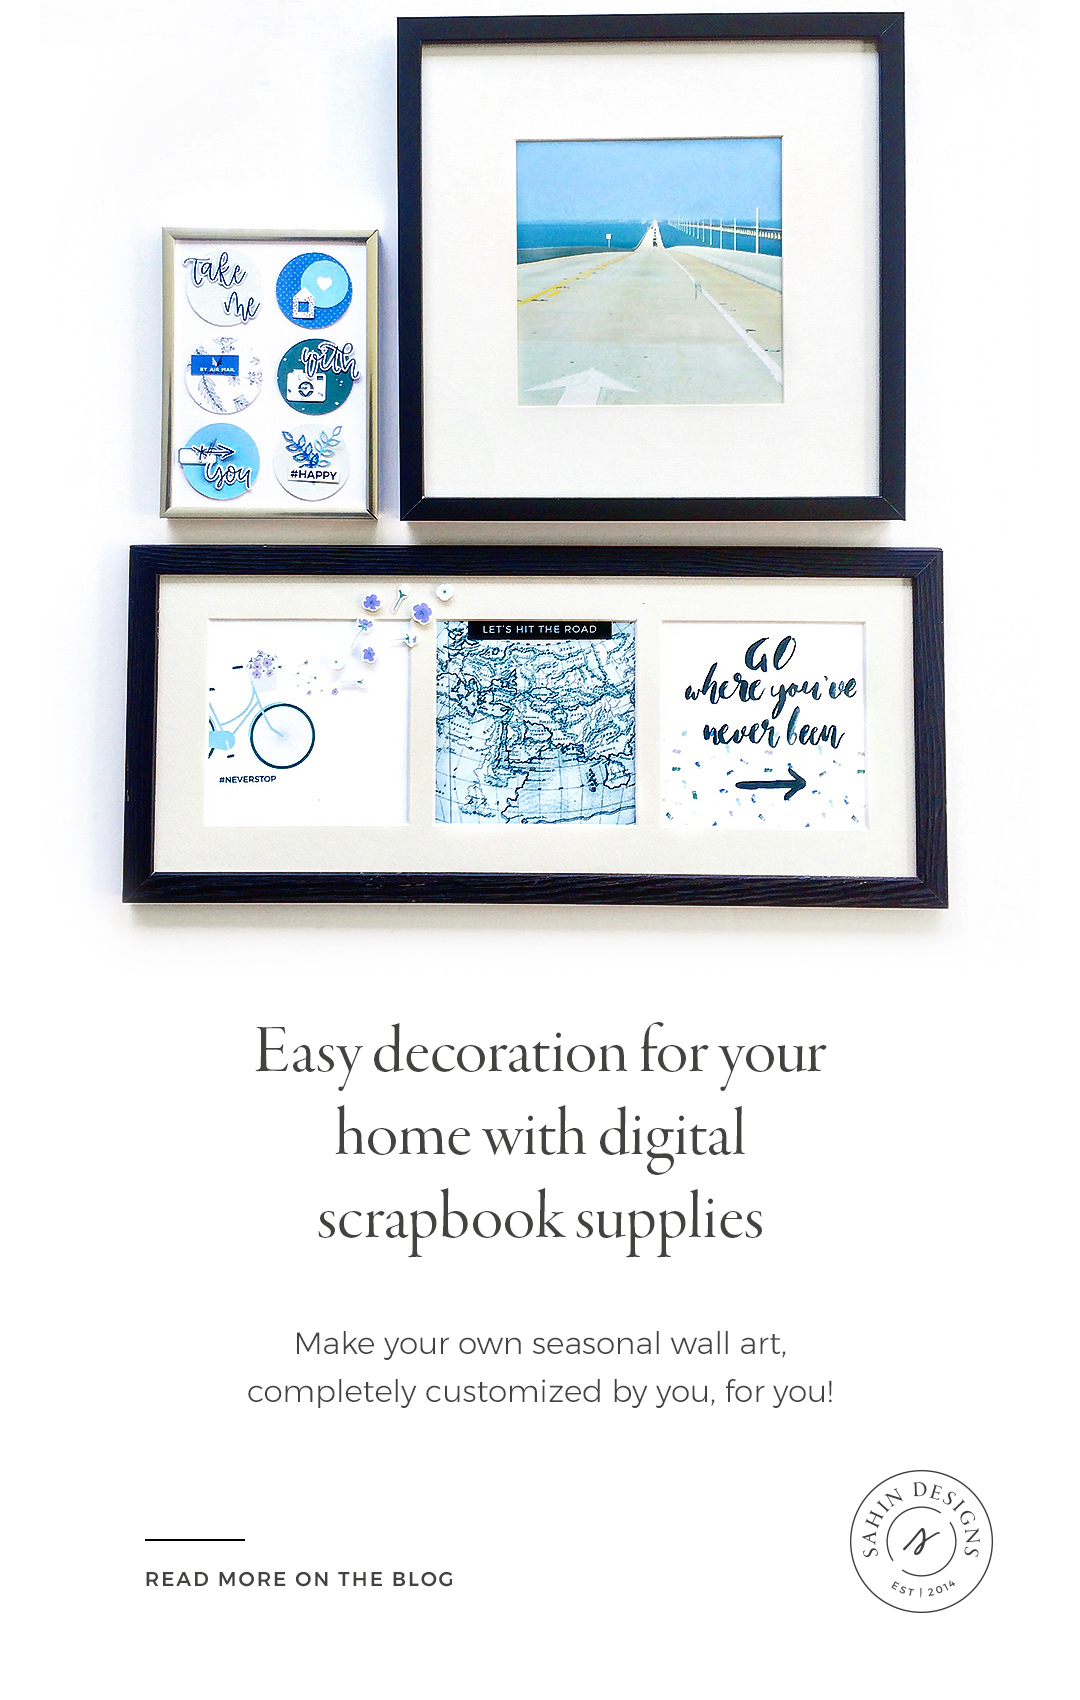 Easy decoration for your home with digital scrapbook supplies - Sahin Designs